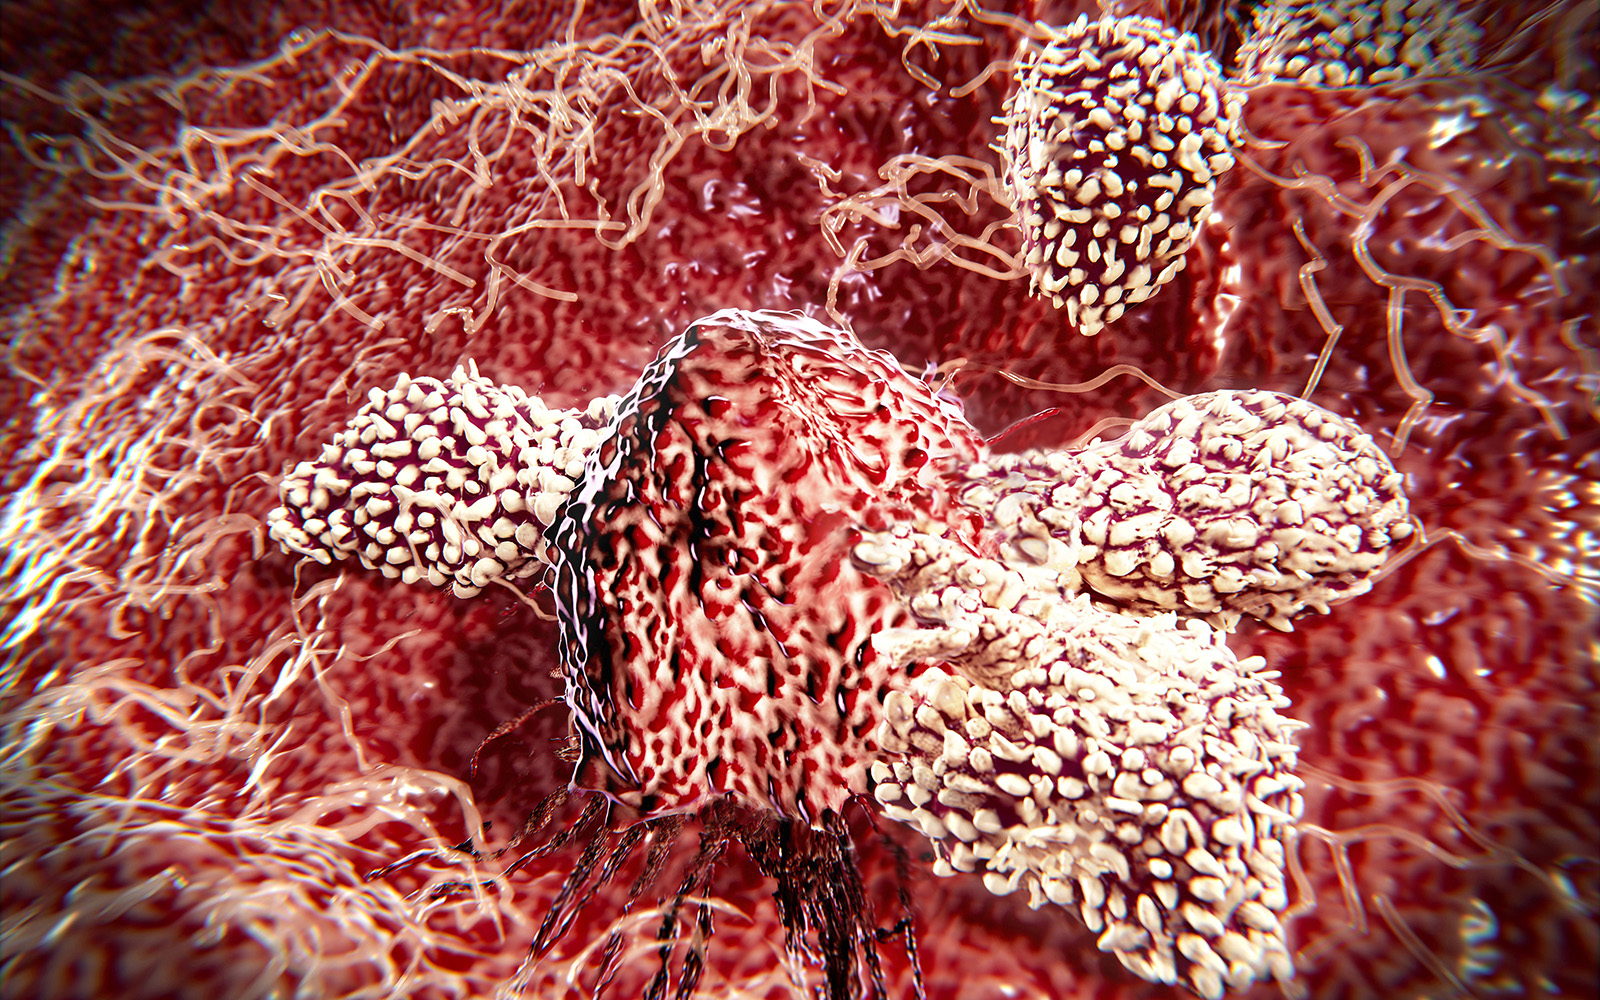 Computer illustration of cytotoxic T-lymphocytes attacking a cancer cell. UConn Health researchers are developing a technology that can identify which patients will respond to immunotherapy, with the goal of extending the benefits of the treatment to a wider group of patients. (Juan Gaertner/Science Photo Library via Getty Images)